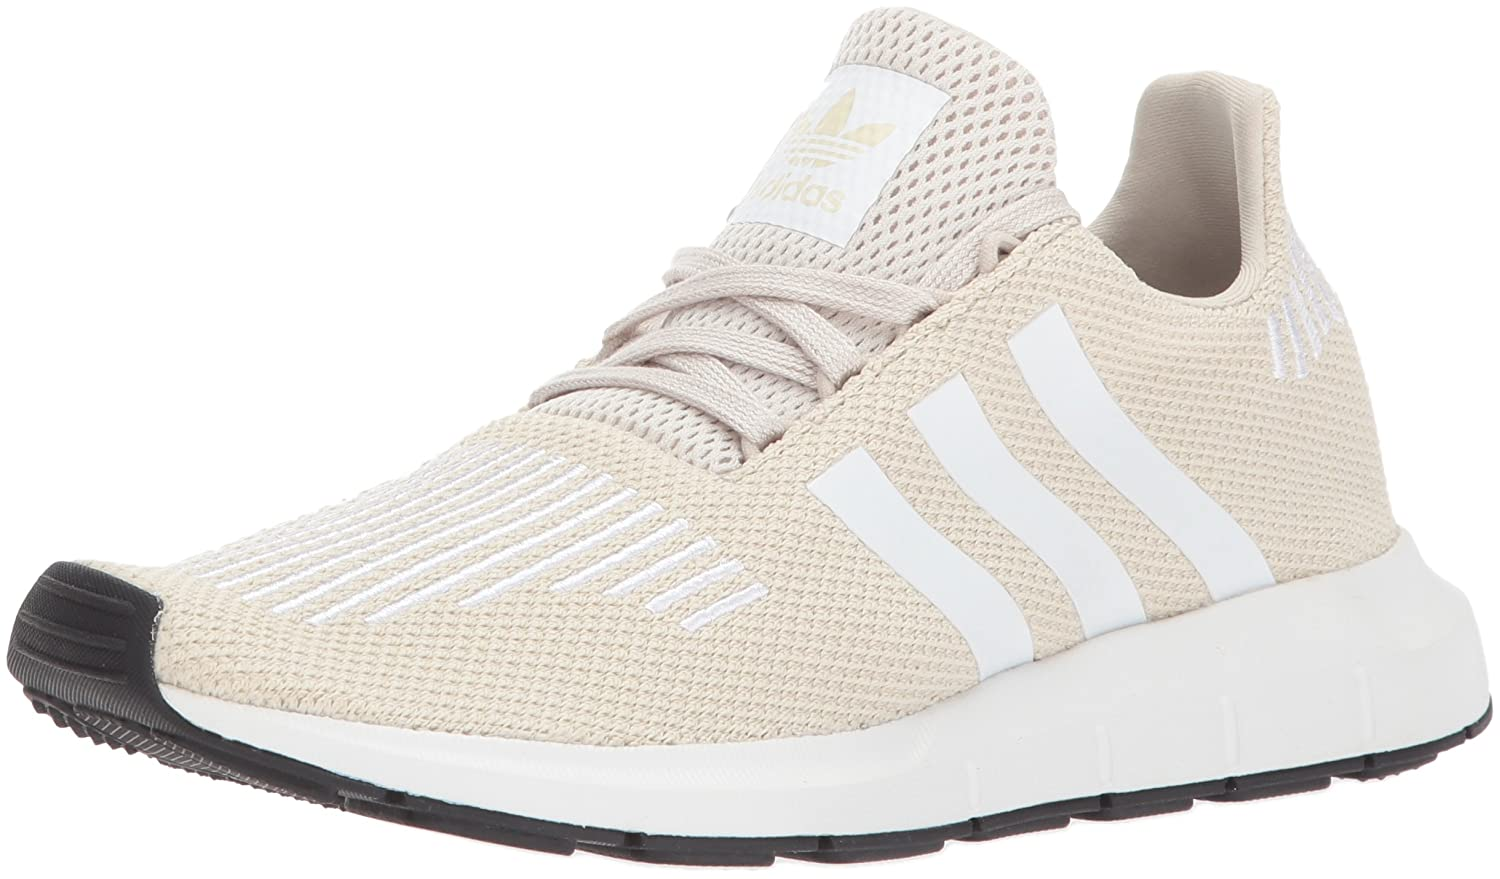 adidas Women's Swift Run W B01MRXHKG9 6.5 B(M) US|Clear Brown/White/Crystal White